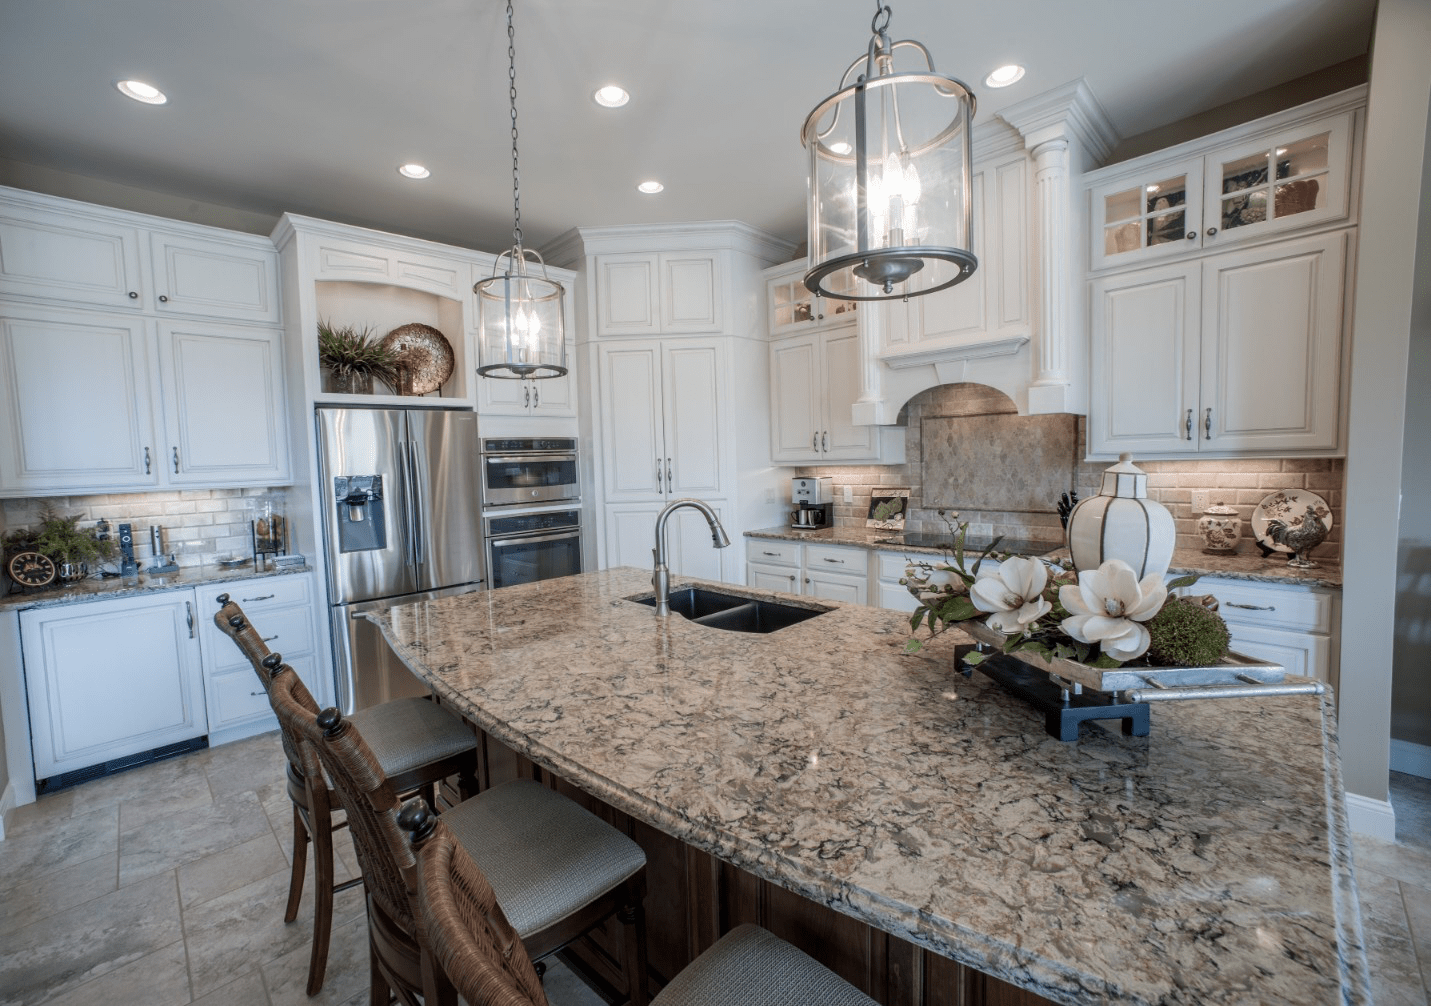 Kitchen cabinets and countertop | Johnston Paint & Decorating